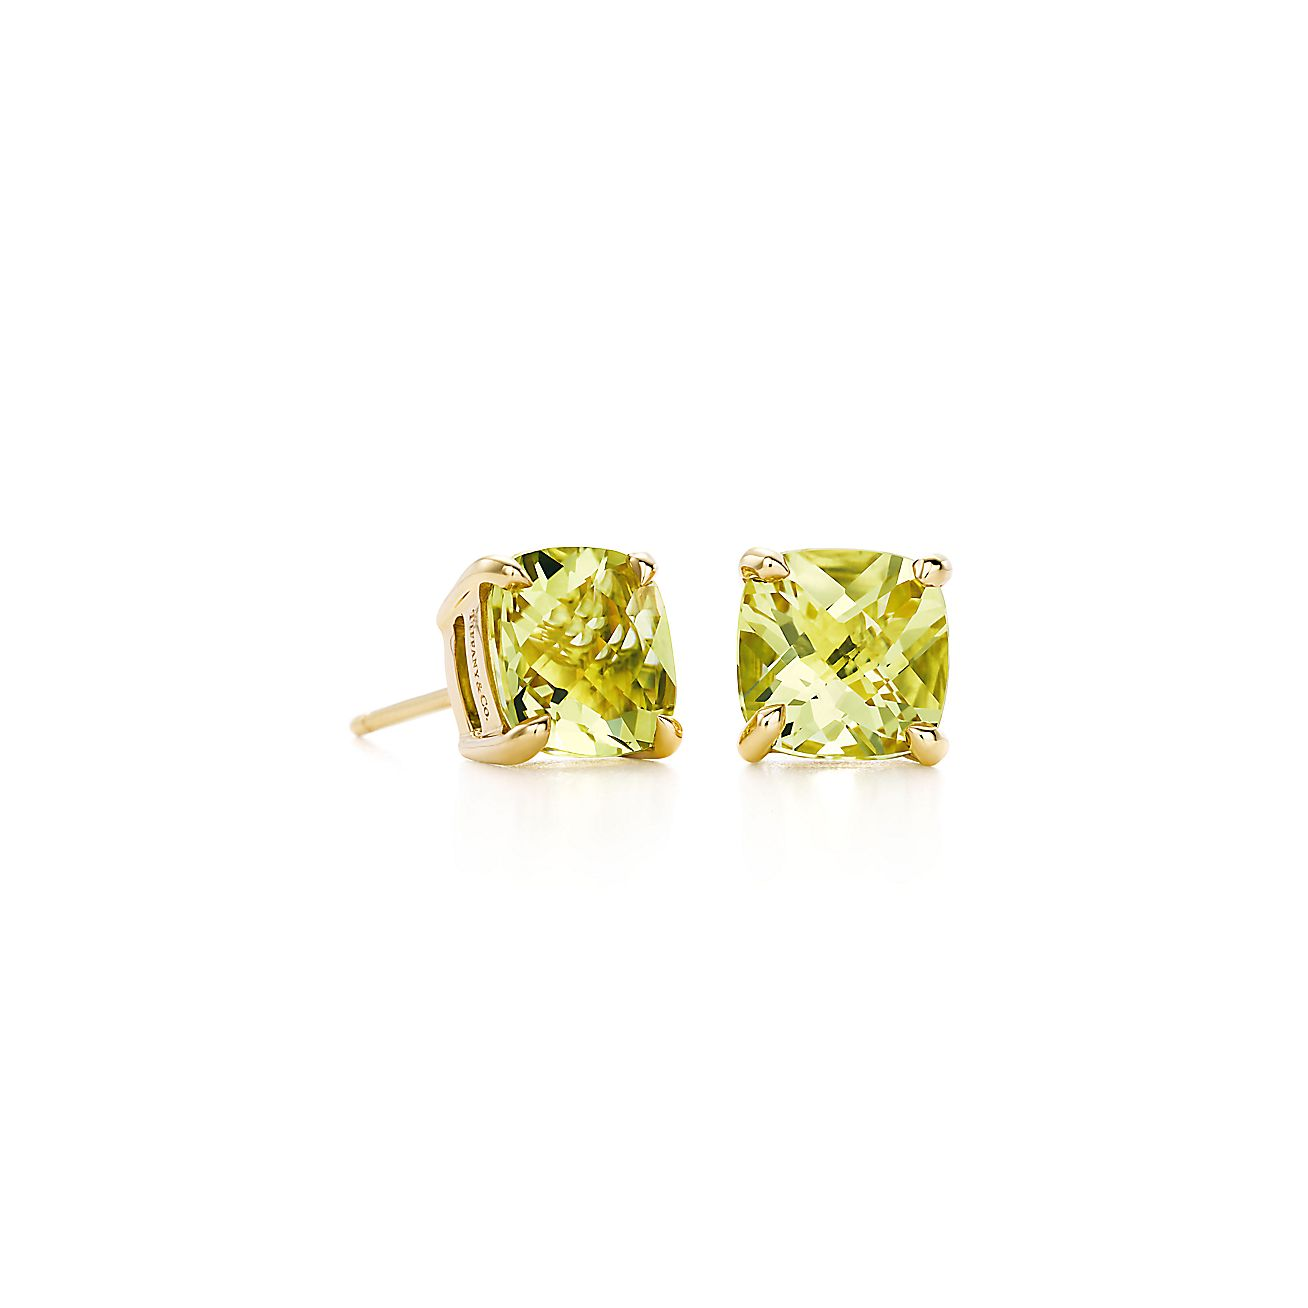 Tiffany Sparklers:Yellow Citrine Earrings